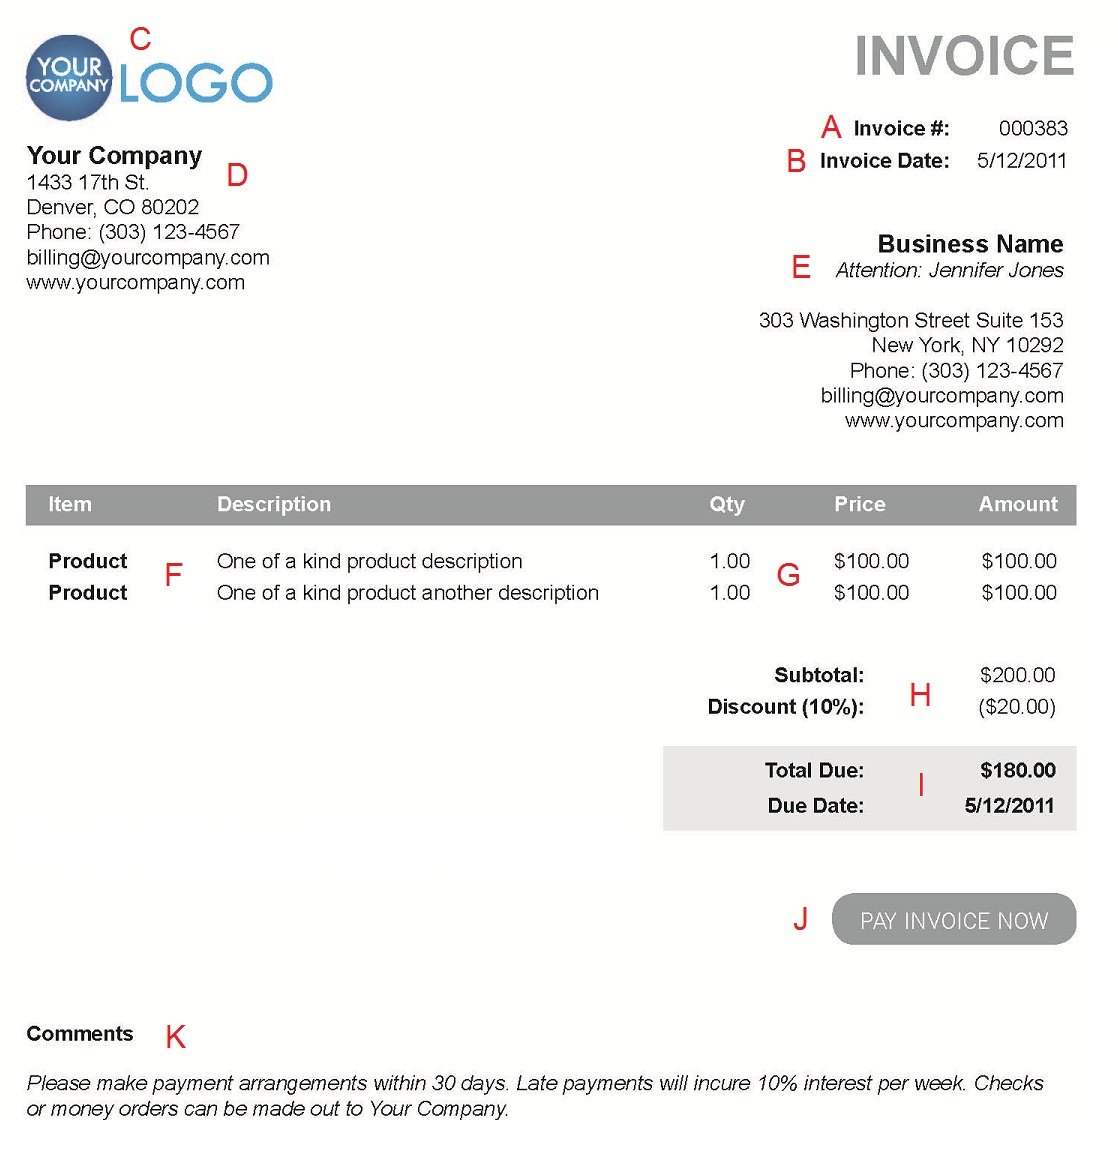 Pigbrotherus  Marvelous The  Different Sections Of An Electronic Payment Invoice With Interesting A  With Attractive Xero Delete Invoice Also Amazon Invoice Generator In Addition Rental Invoice Template And How To Send Multiple Invoices In Quickbooks As Well As Sap Invoice Transaction Code Additionally Templates Invoices Free Excel From Paysimplecom With Pigbrotherus  Interesting The  Different Sections Of An Electronic Payment Invoice With Attractive A  And Marvelous Xero Delete Invoice Also Amazon Invoice Generator In Addition Rental Invoice Template From Paysimplecom